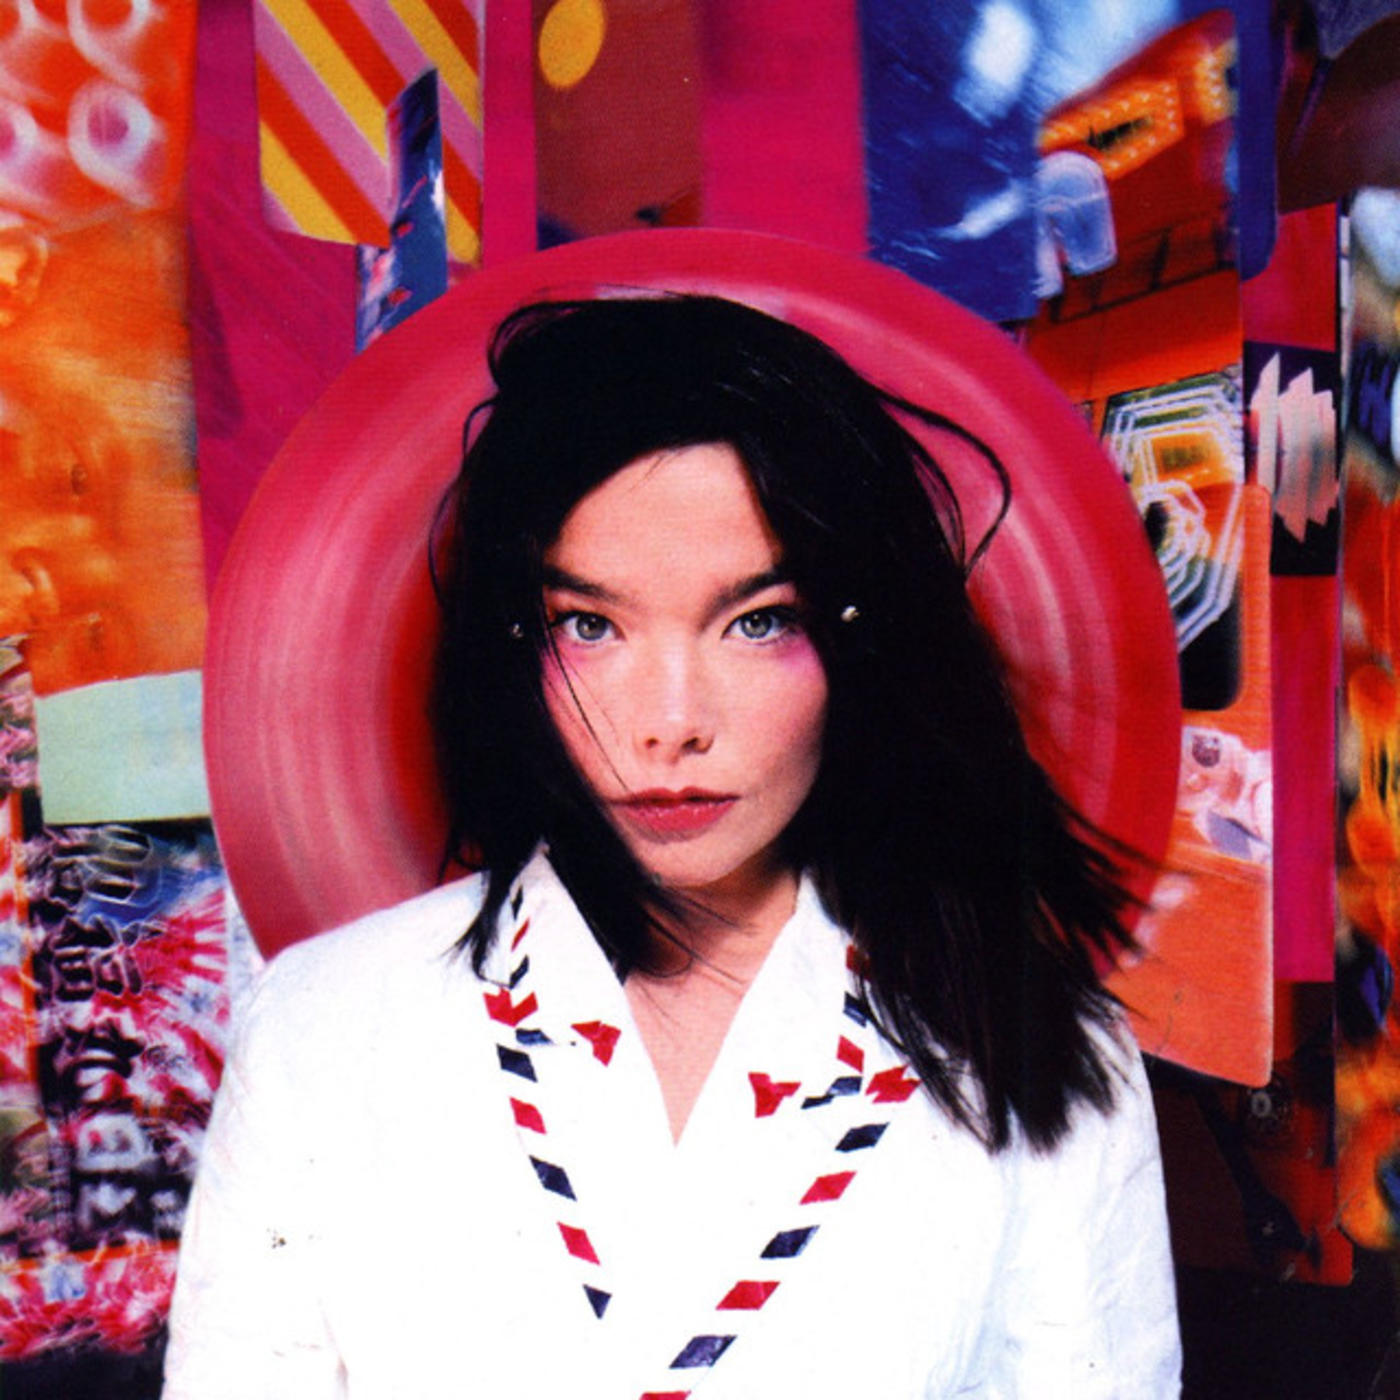 Björk post The 100 Greatest Albums of All Time